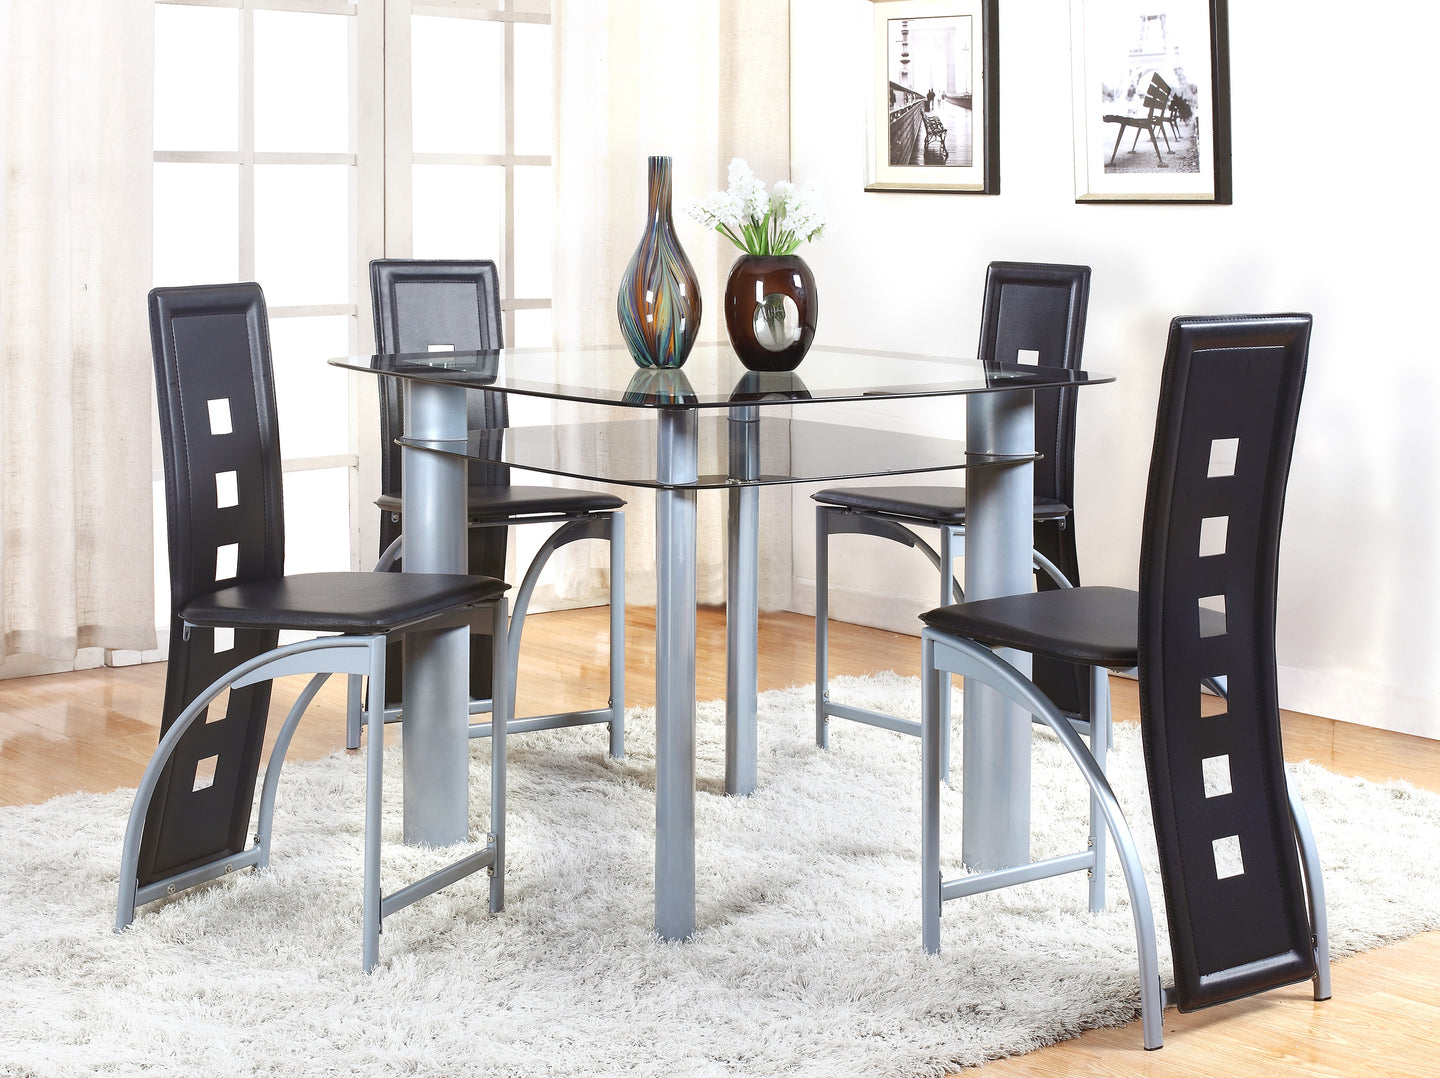 Echo Gray/Black 5-Piece Glass-Top Counter Height Dining Set | 1770 - Bellaria Furniture HomeStore